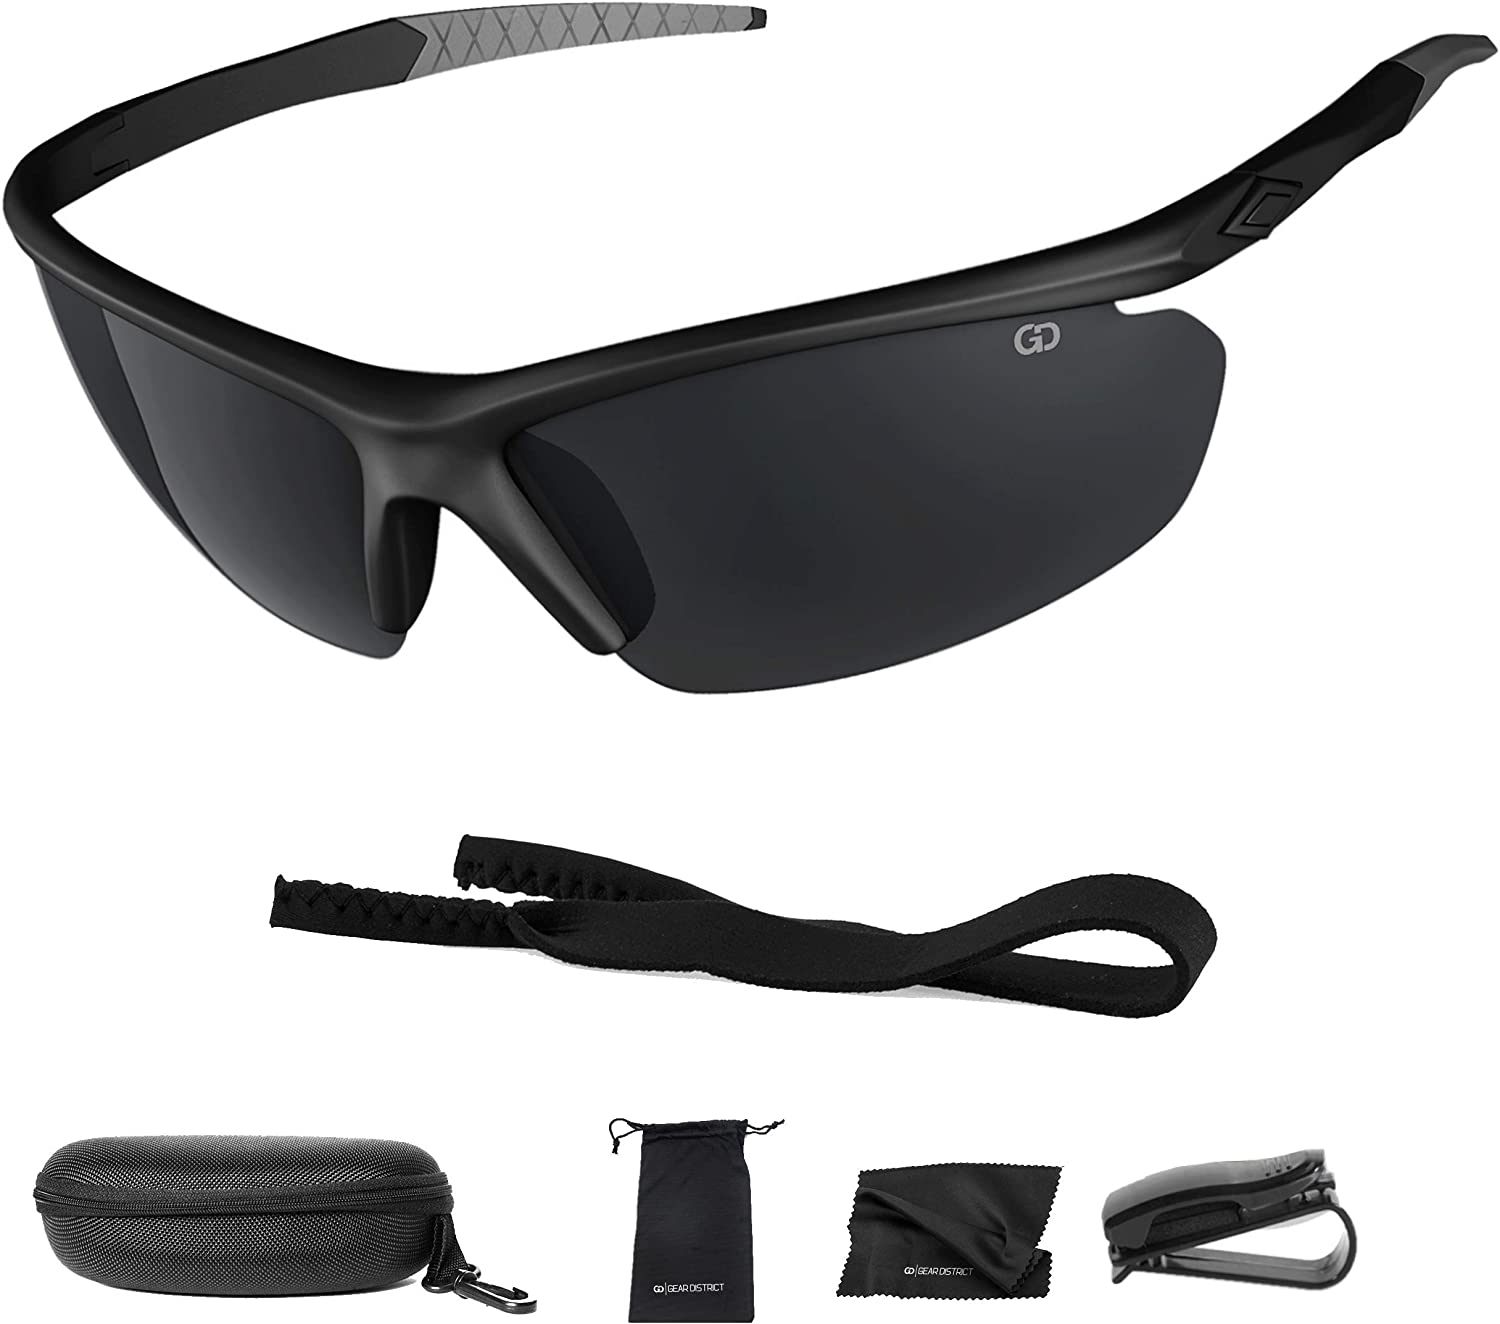 Polarized UV400 Sport Sunglasses Anti-Fog Ideal for Driving or Sports Activity (Black, Grey): Clothing